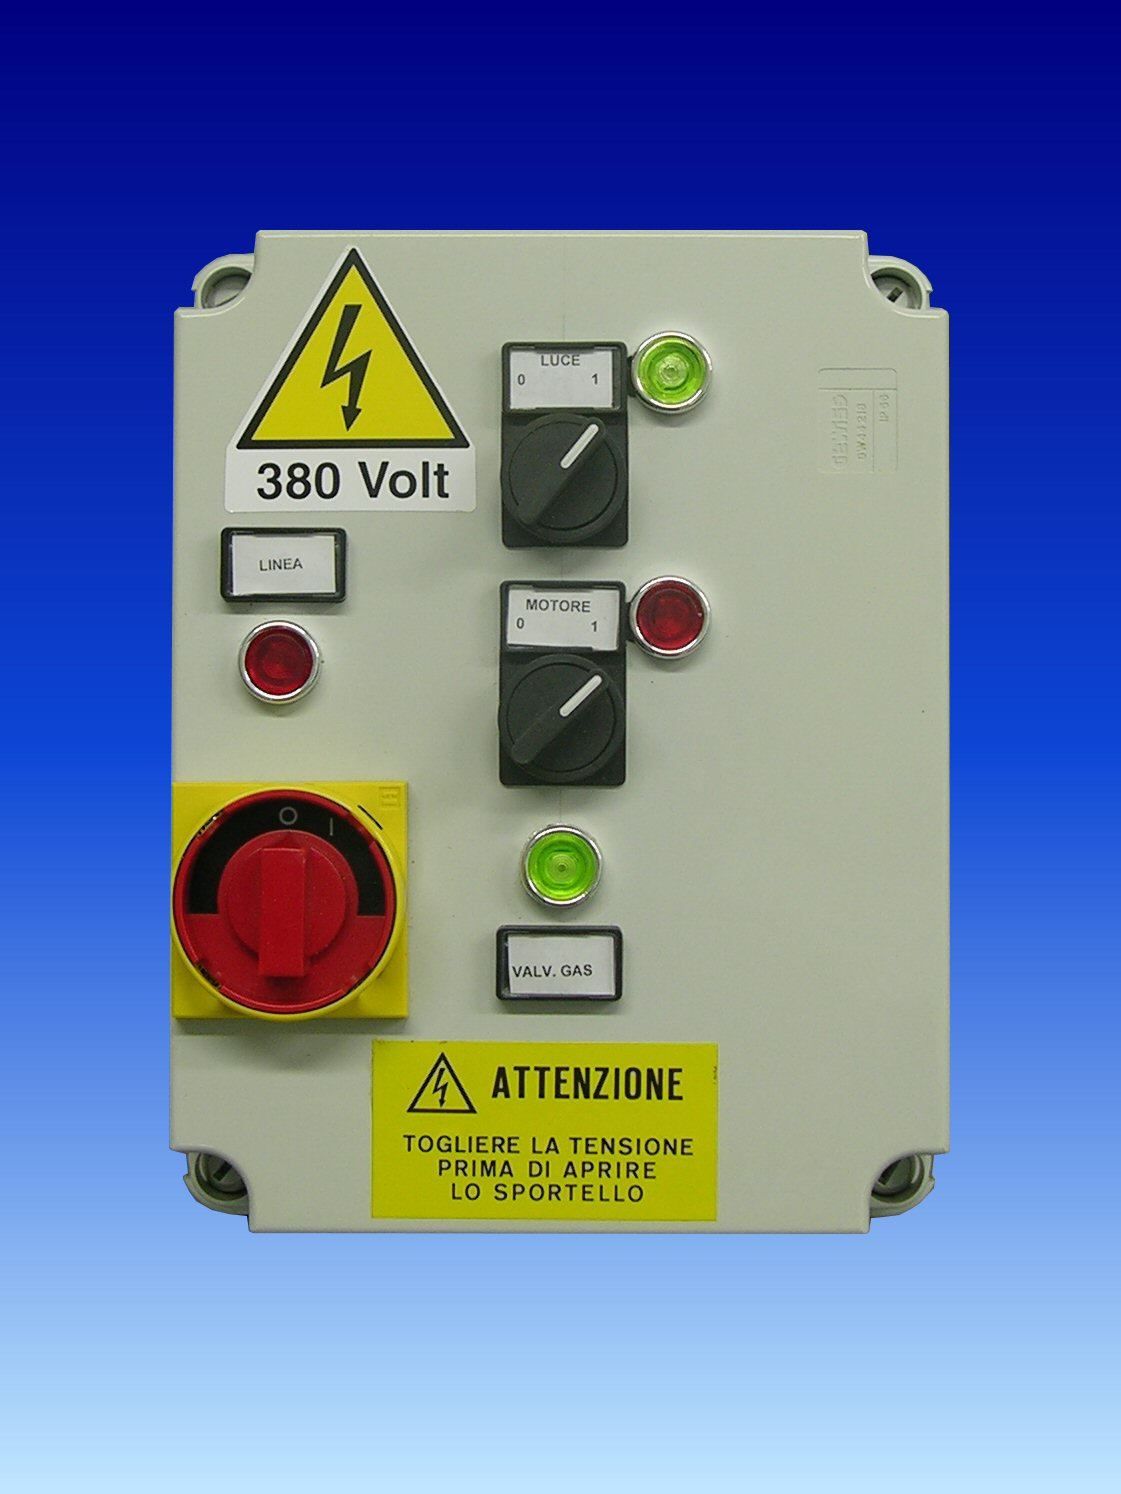 gas remote control with Quadro Trifase 1 Motore 1 Velocita E Interruttore on Industrial  munications furthermore Humidity And Air Quality Sensors together with J And K Thermocouples likewise 1250 Kw Cummins Diesel Generator Non Epa besides fmctechnologies.